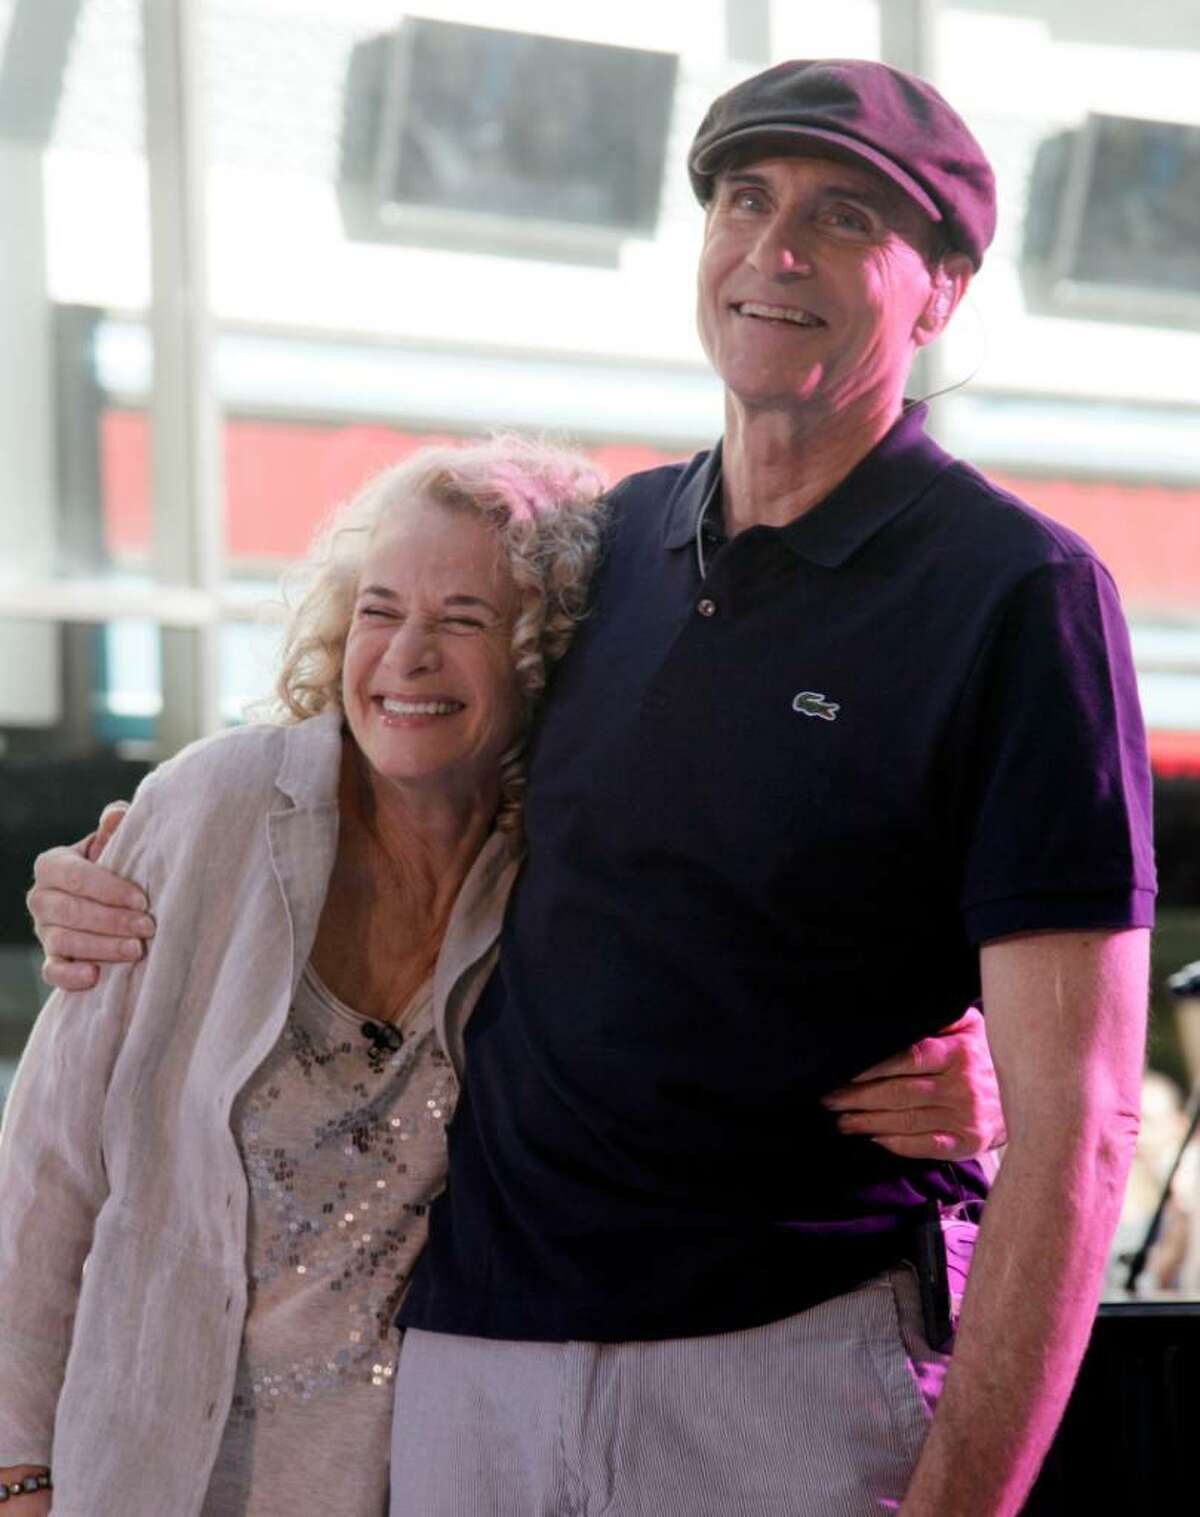 In this June 18, 2010, file photo, Carole King and James Taylor pose for photos during their appearance on the NBC